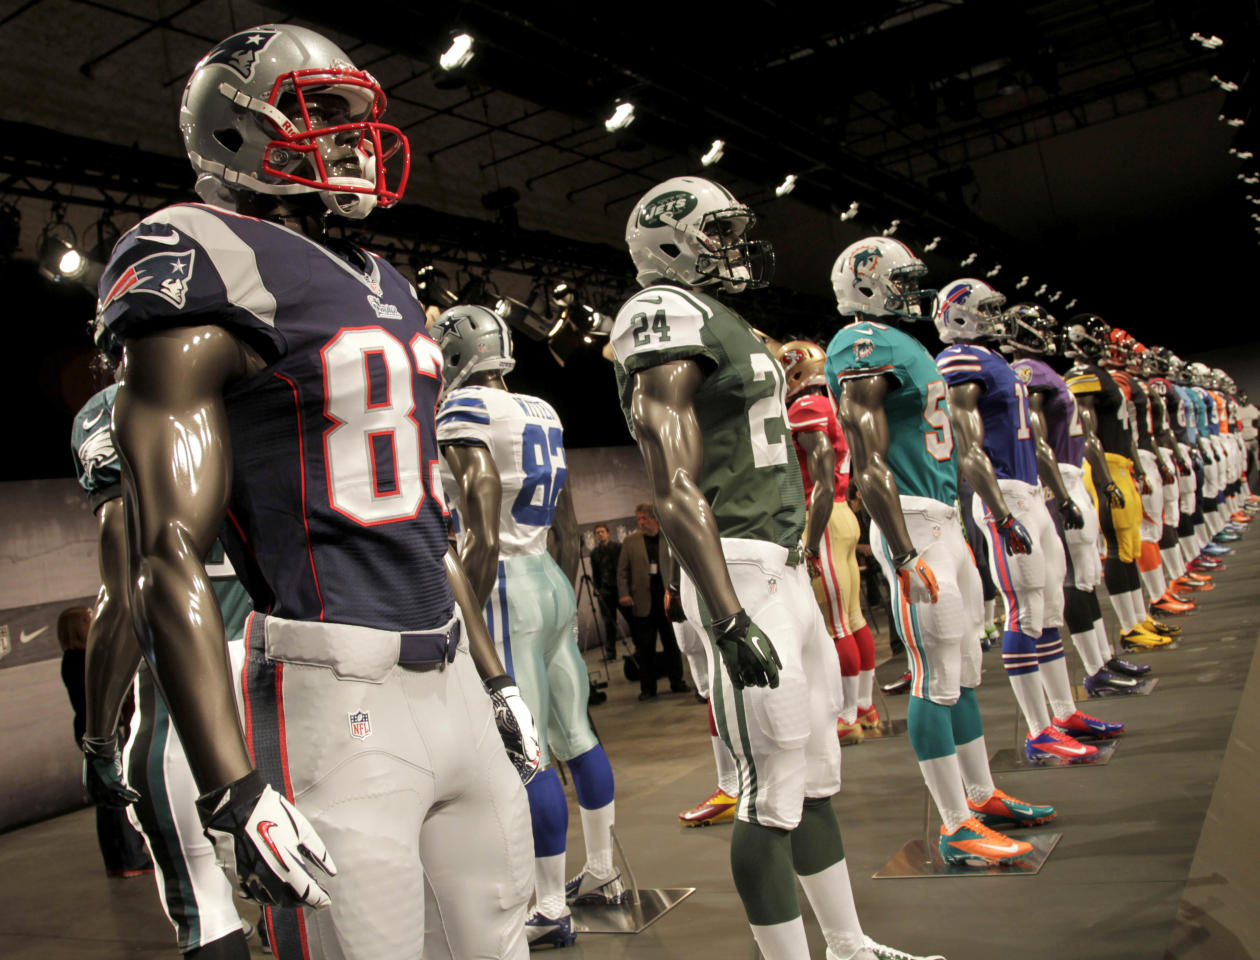 New NFL uniforms are displayed on mannequins during a presentation in New York, Tuesday, April 3, 2012. The NFL and Nike showed off the new look in grand style with a gridiron-styled fashion show at a Brooklyn film studio. (AP Photo/Seth Wenig)